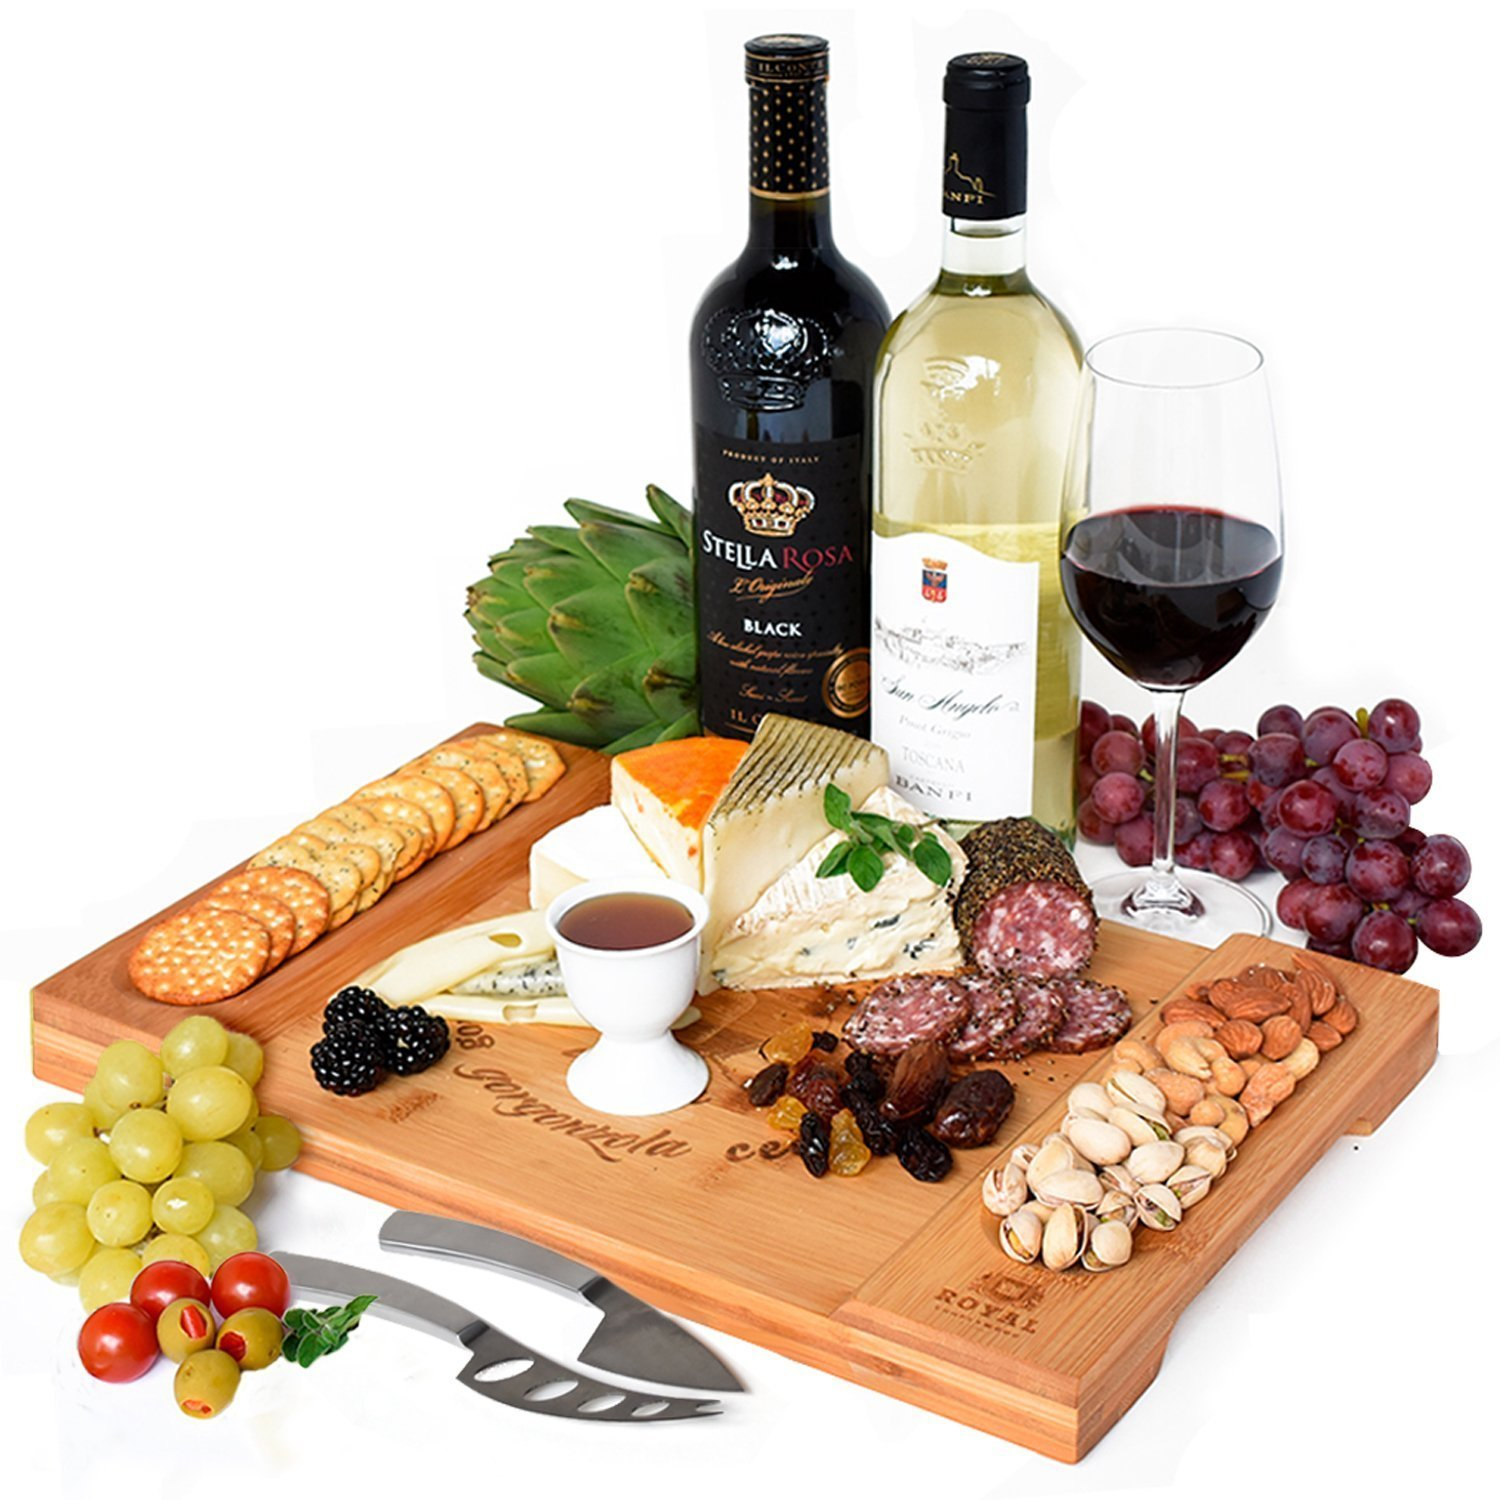 Unique Bamboo Cheese Board, Charcuterie Platter & Serving Tray for Wine, Crackers, Brie and Meat. Large & Thick Wooden Server - Fancy House Warming Gift & Perfect Choice for Gourmets (Bamboo) by Royal Craft Wood